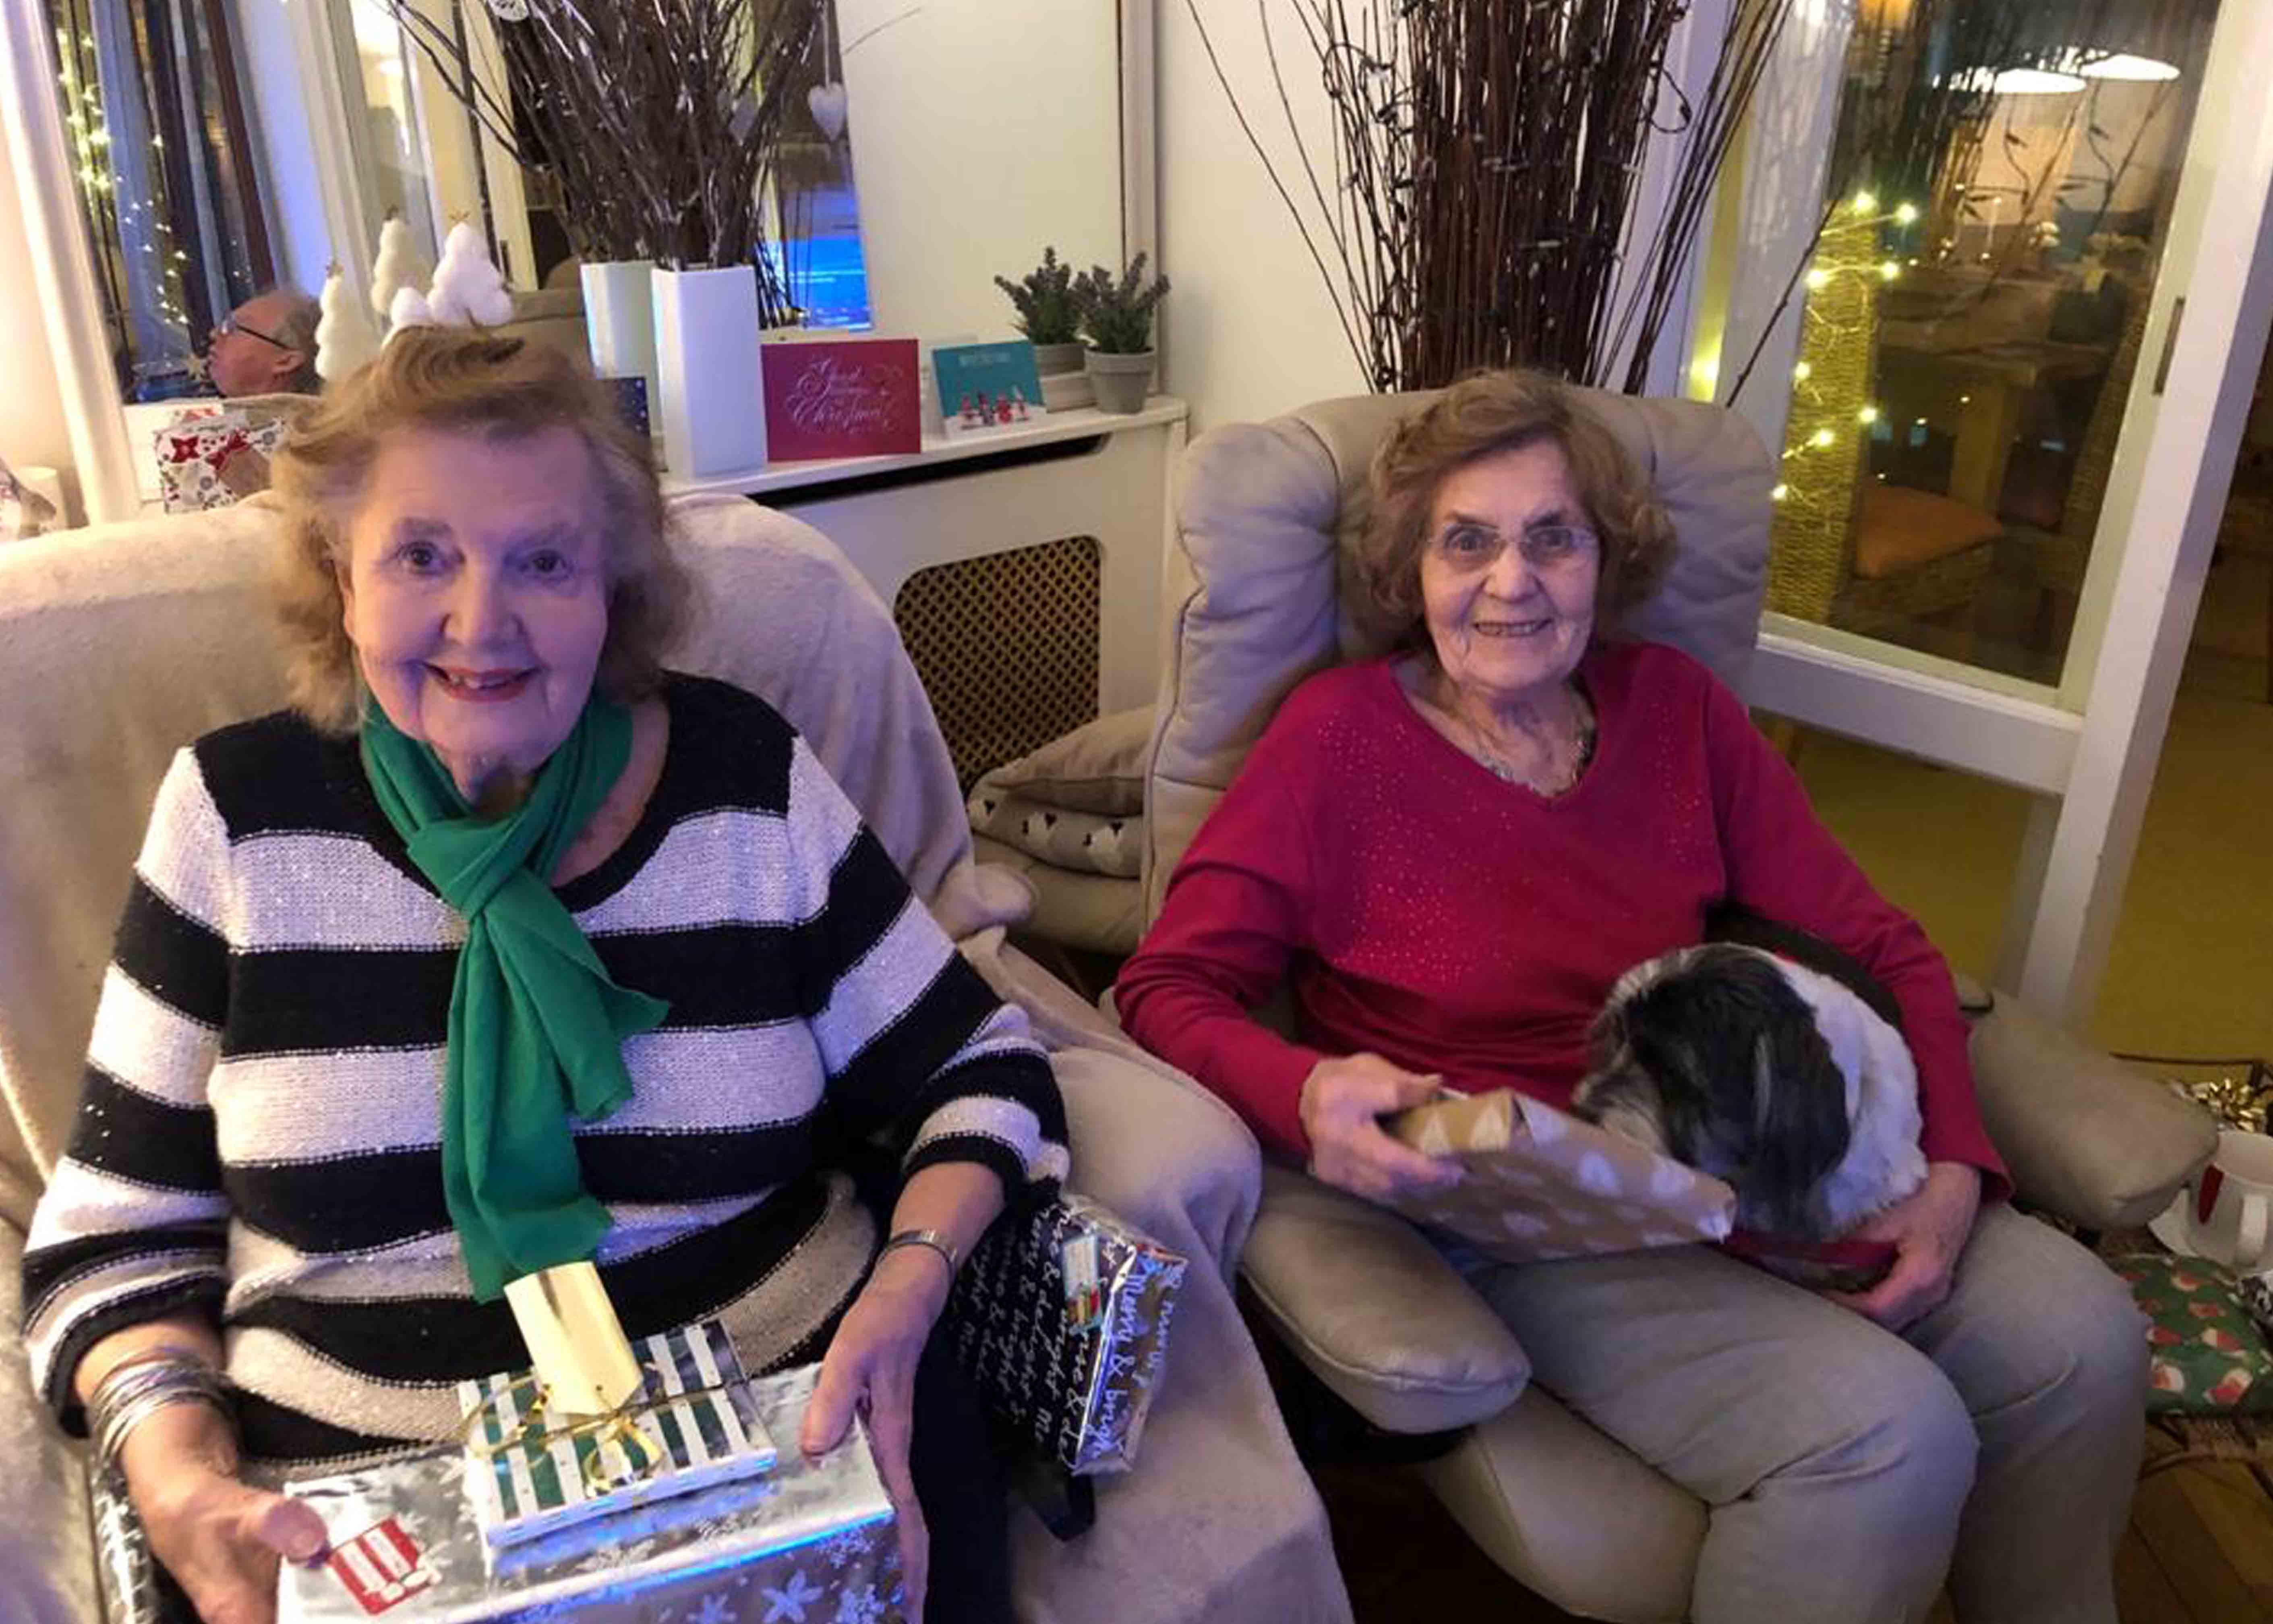 Two elderly women with presents